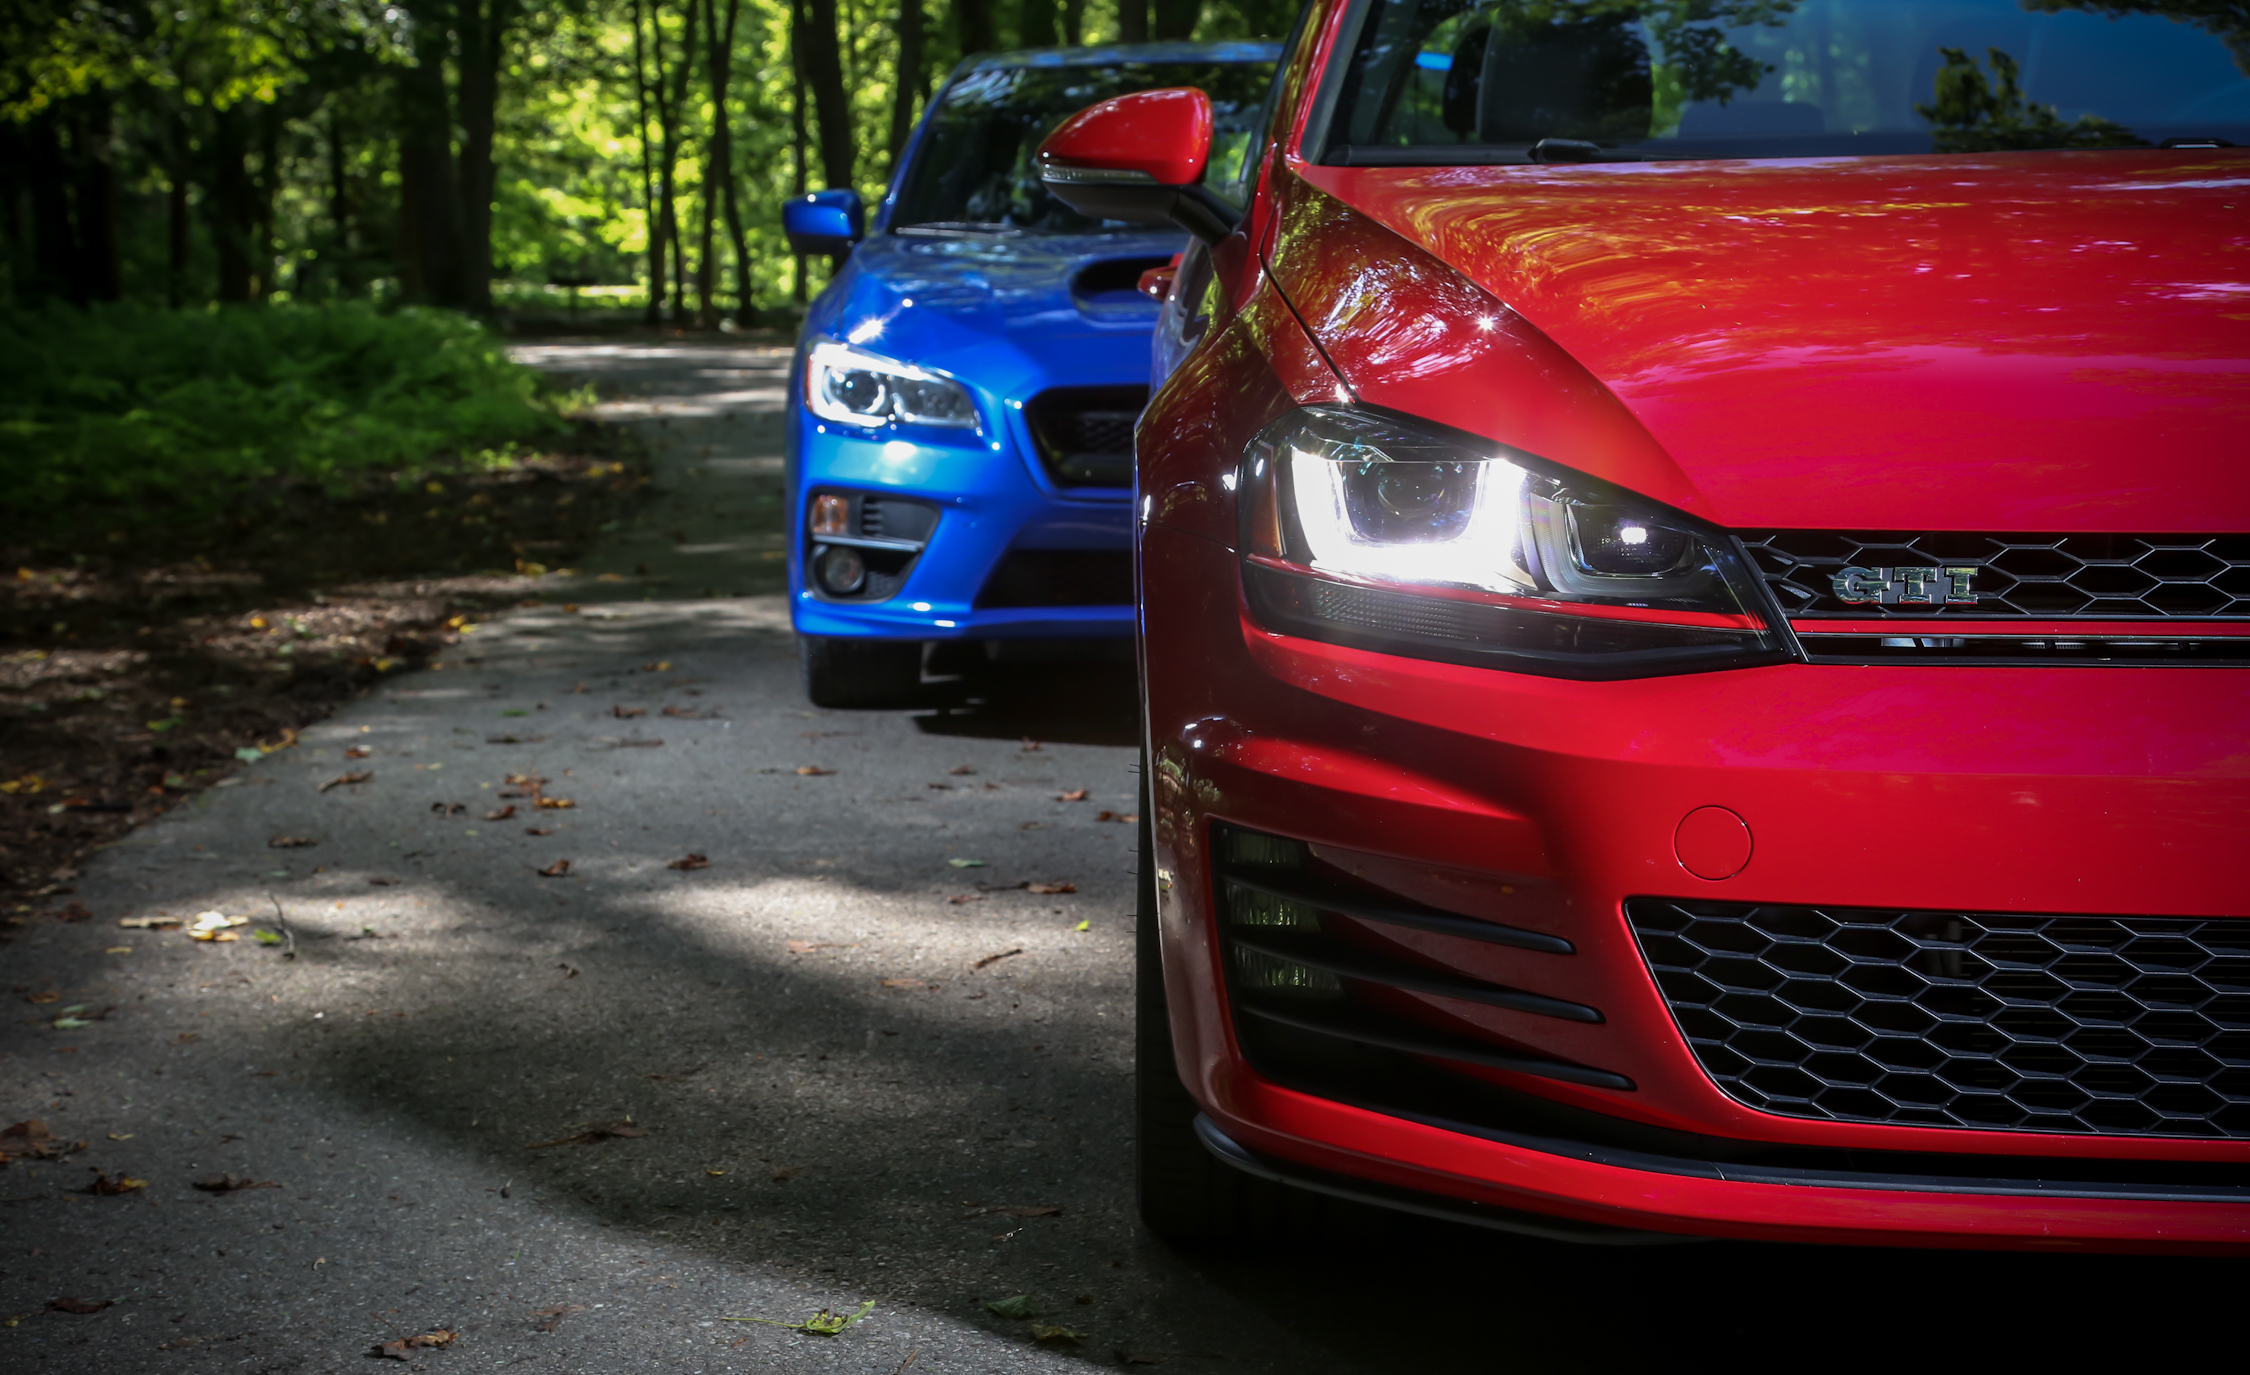 2015 Subaru WRX And 2015 Volkswagen GTI 5 Door (Photo 4 of 55)